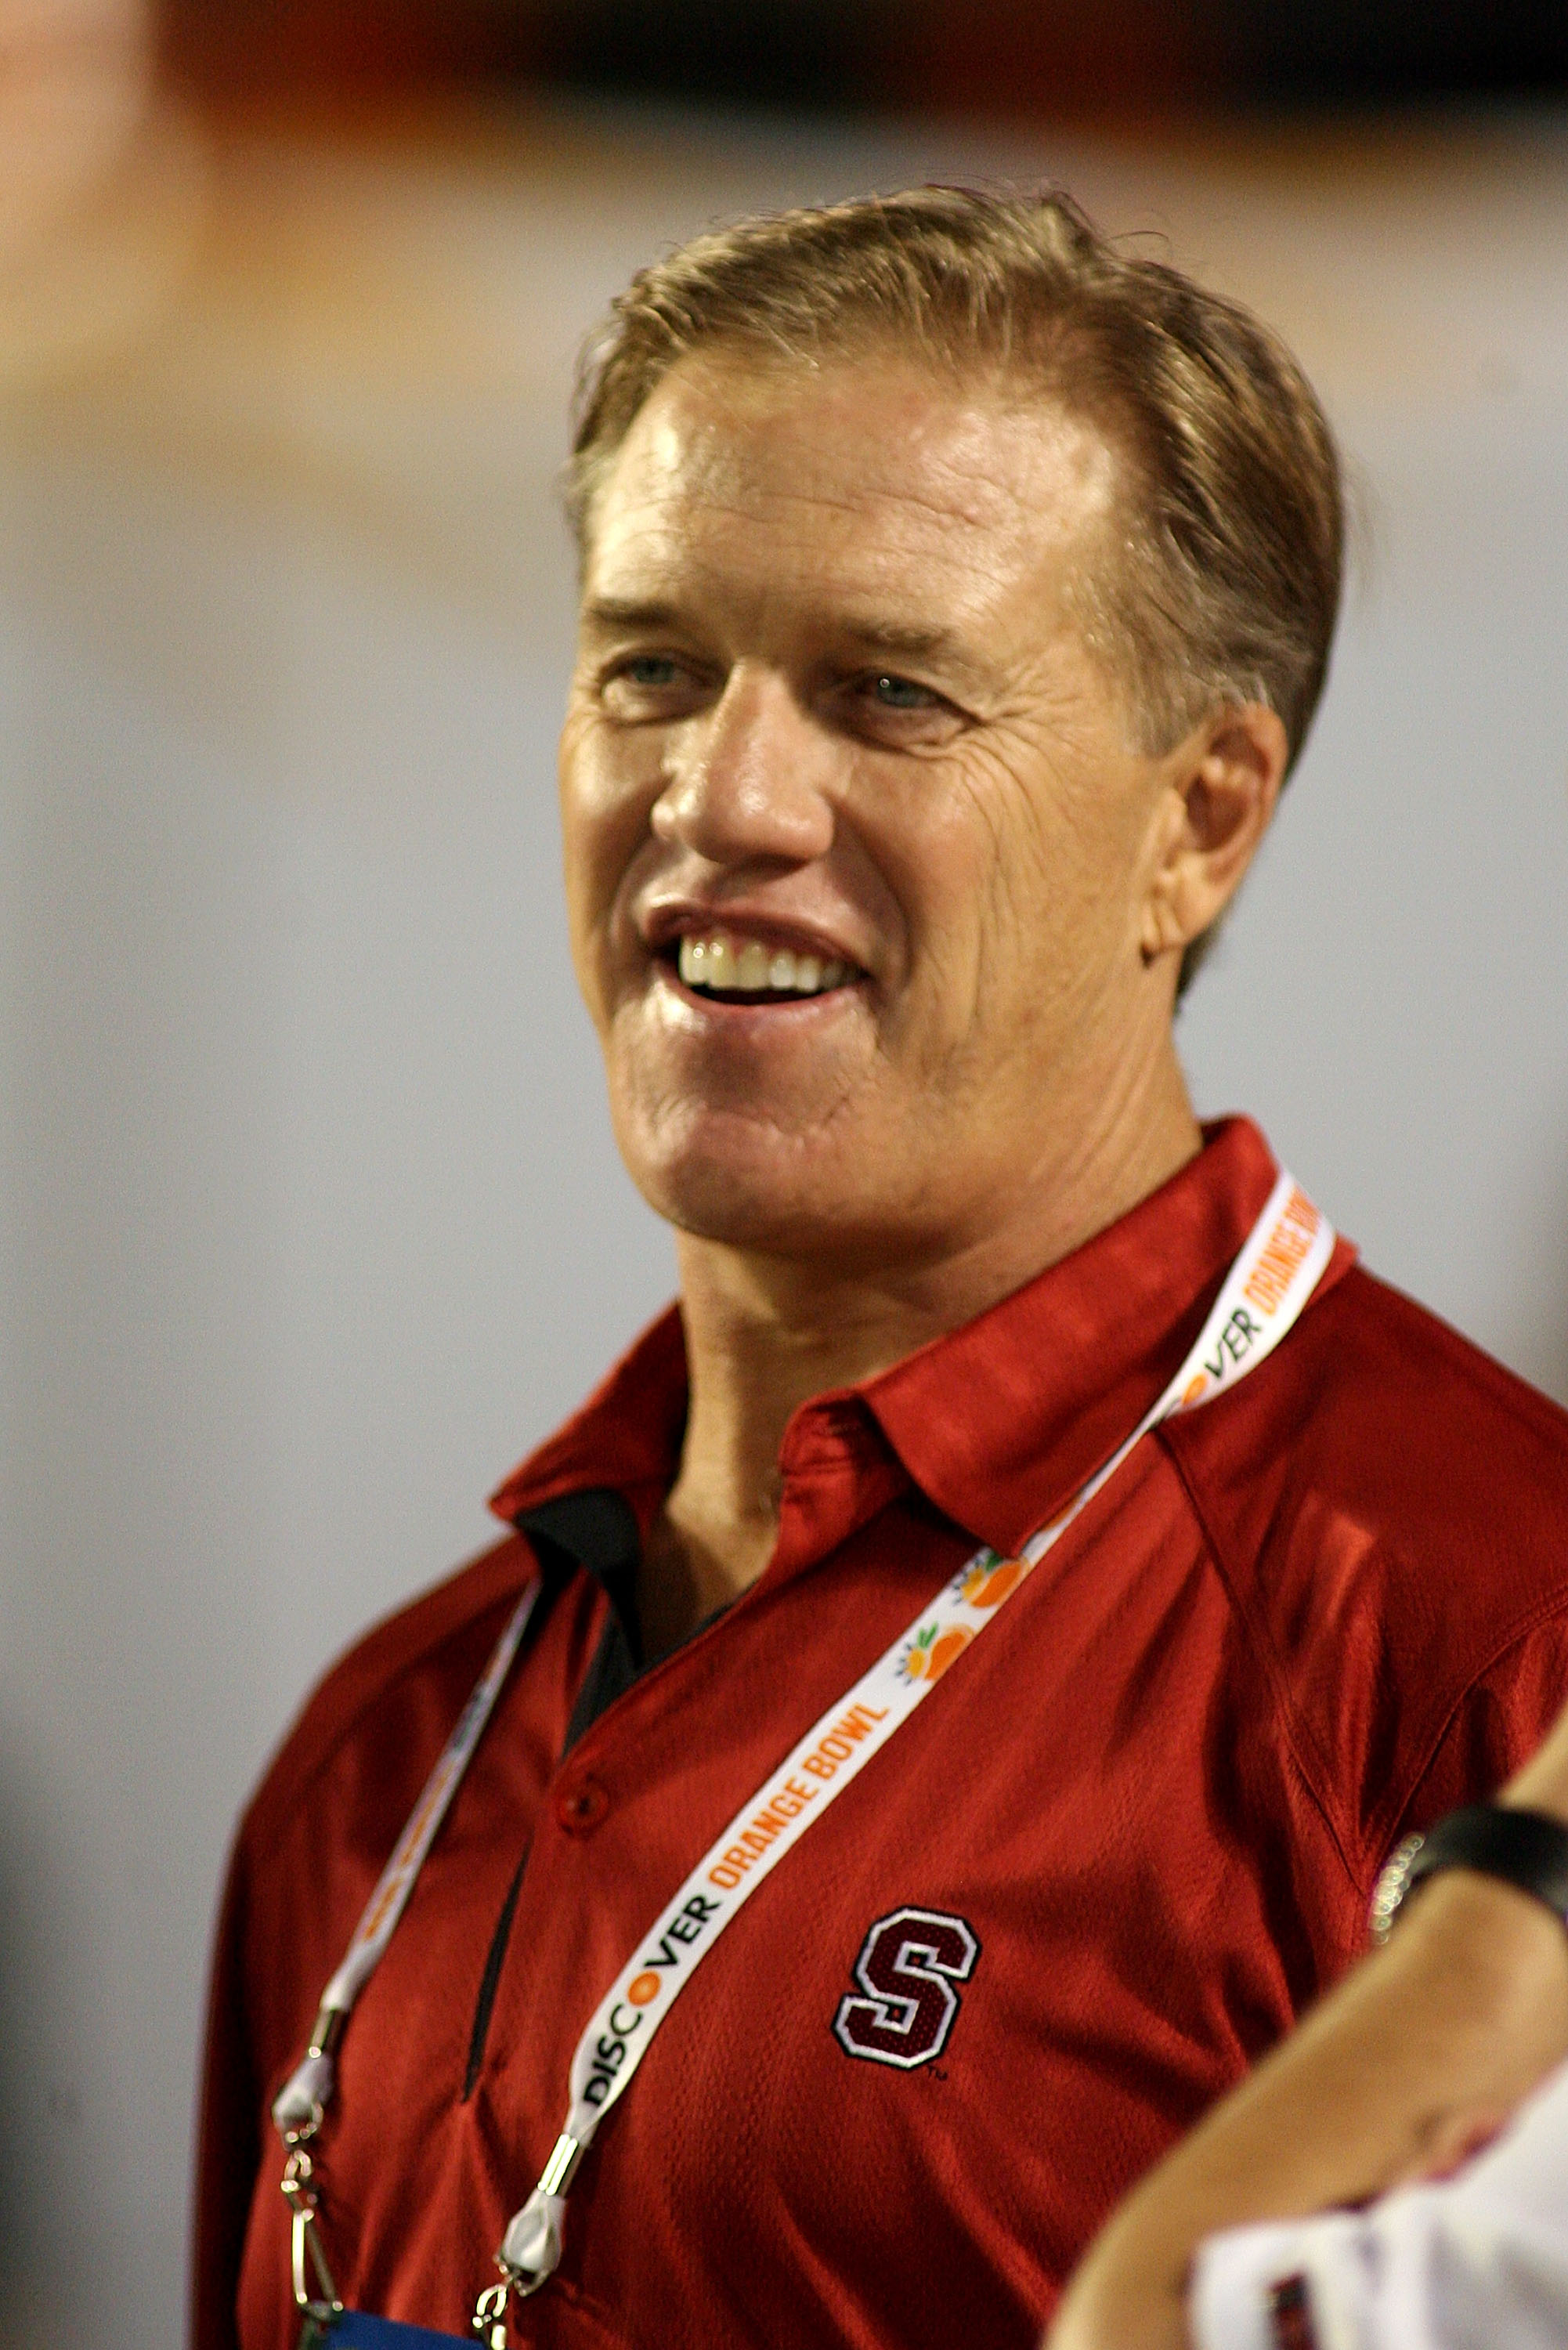 MIAMI, FL - JANUARY 03:  Stanford alum John Elway stands on the Stanford Cardinal sideline against the Virginai Tech Hokies during the 2011 Discover Orange Bowl at Sun Life Stadium on January 3, 2011 in Miami, Florida.  (Photo by Marc Serota/Getty Images)